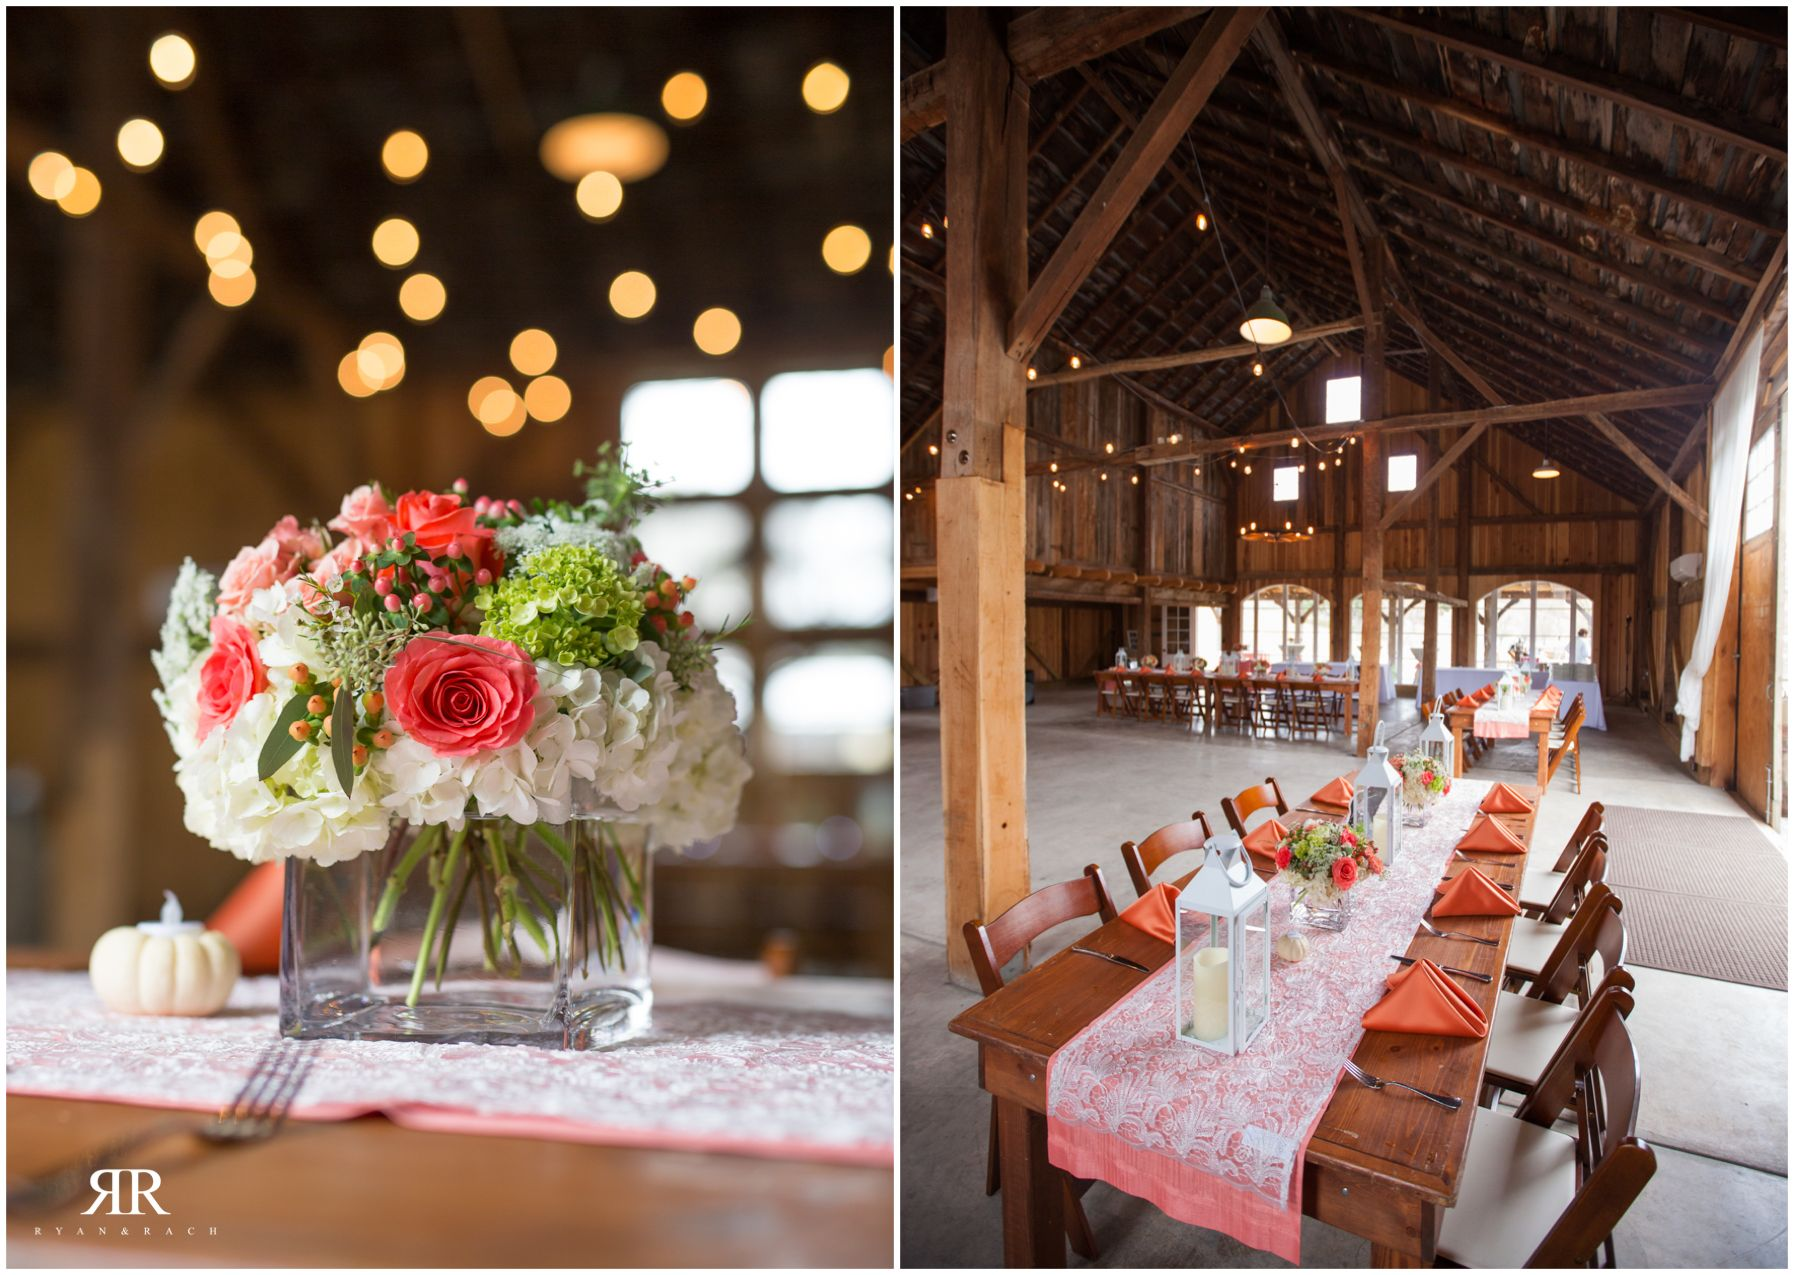 Images of wedding decor Loving all of the pretty details for this Fall rustic and glam